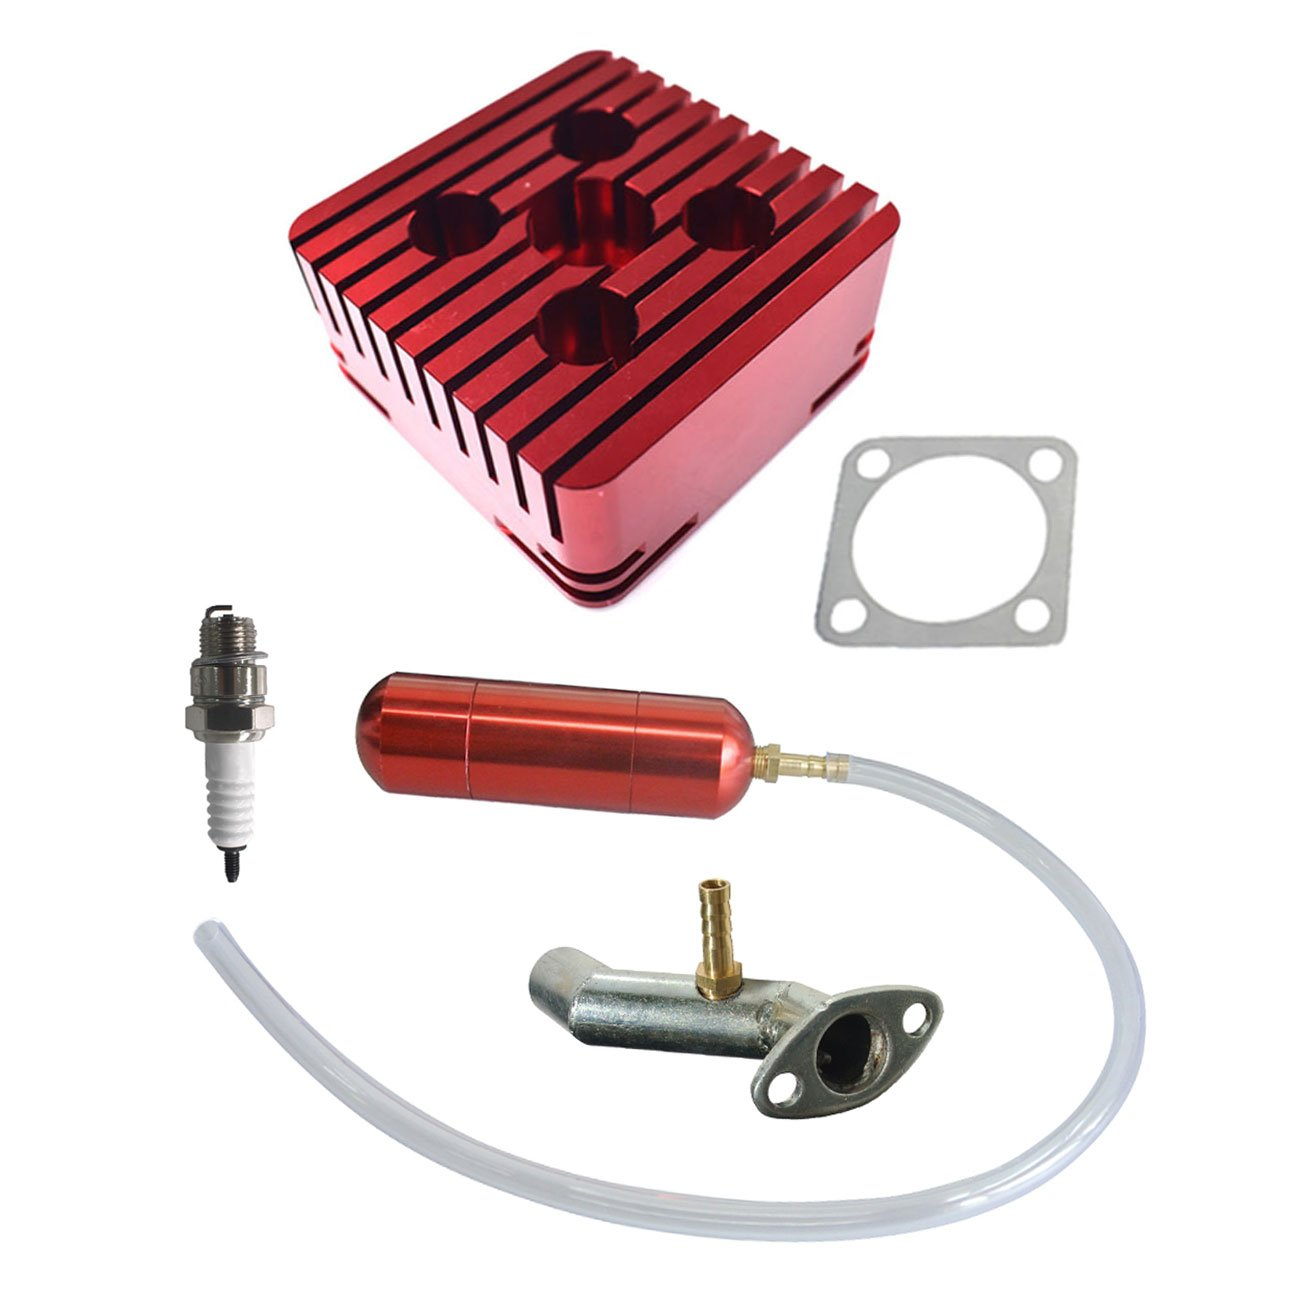 JRL Red CNC Square Cylinder Head Power Boost Bottle Fit 80cc Motorized Bike Engine Huang Machinery